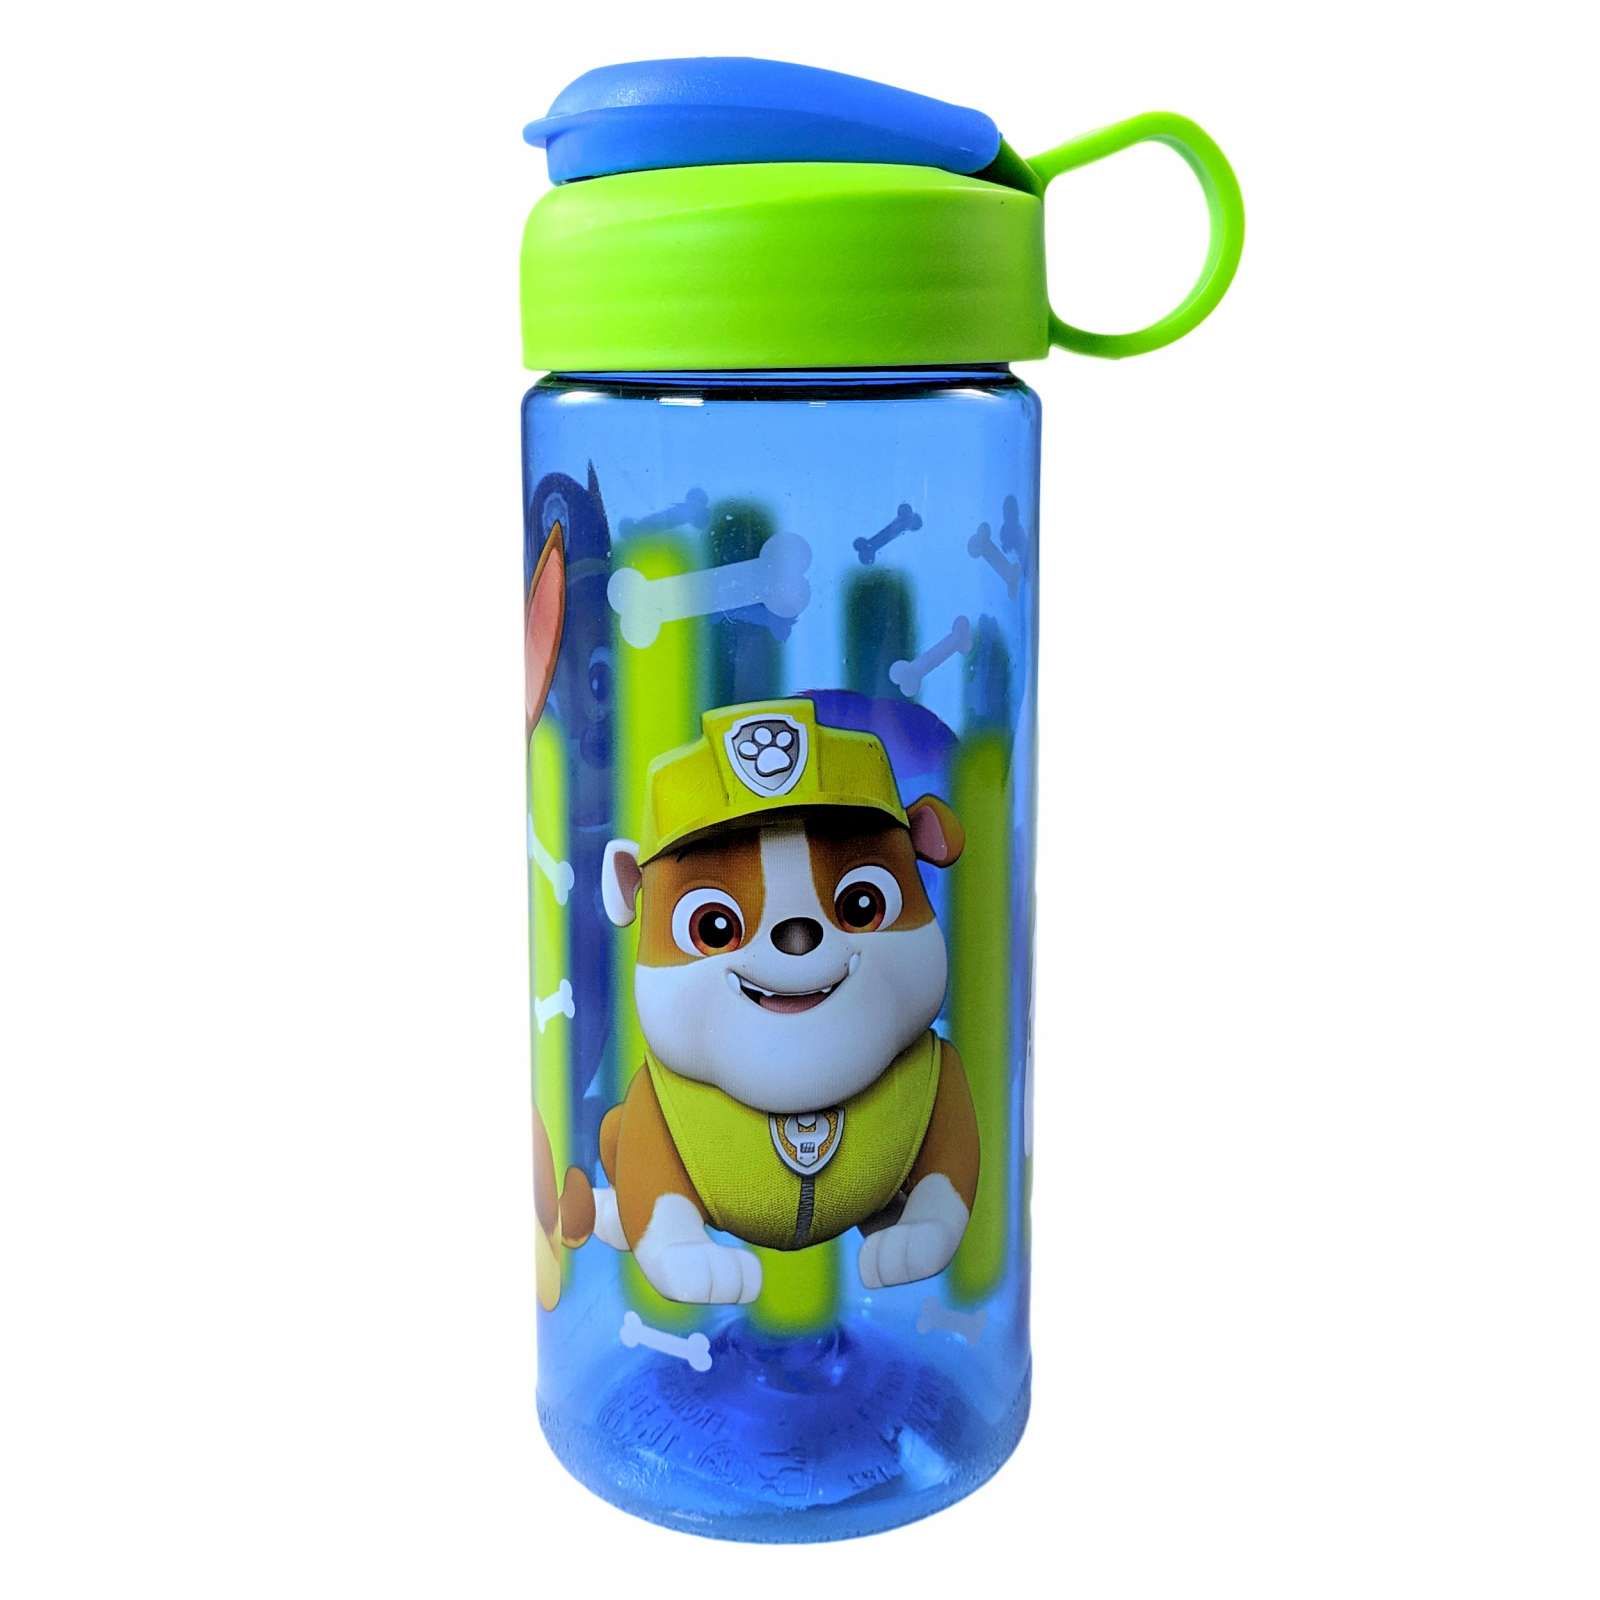 0db8639c61 Paw Patrol from Nickelodeon 16.5oz Water Bottle with Carry Loop and Snap Lid